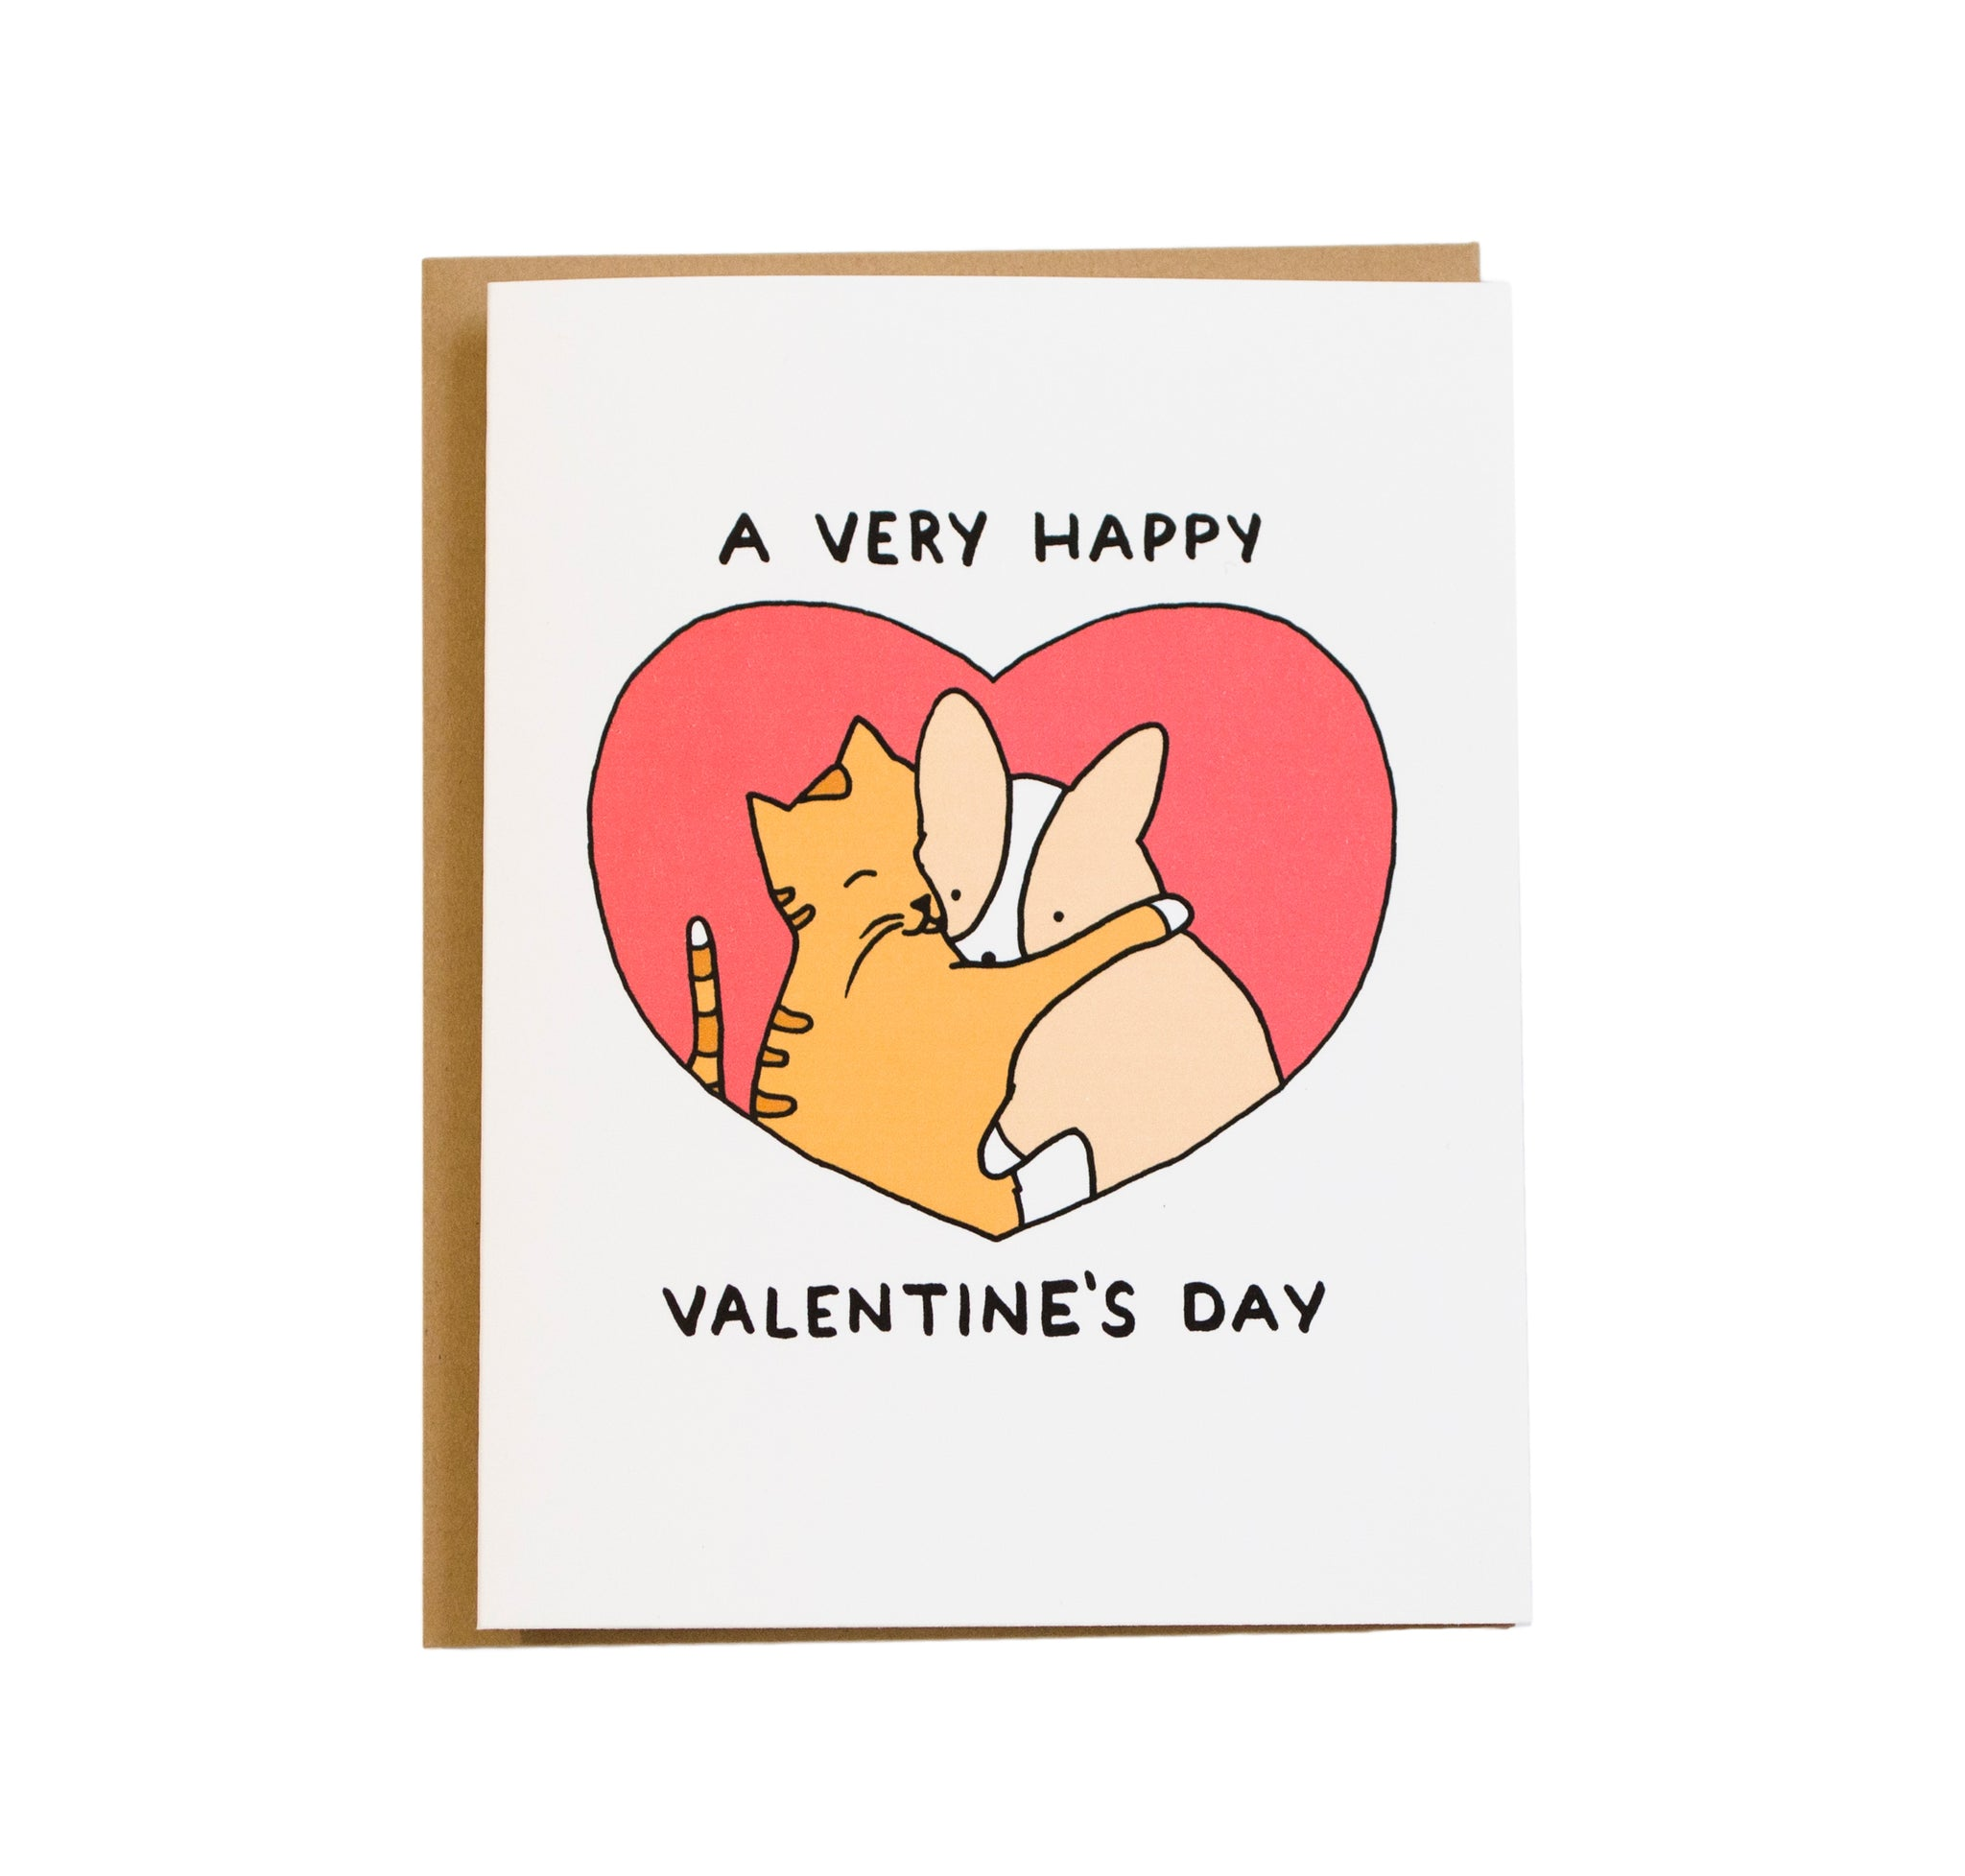 cat hugging corgi valentine's day card